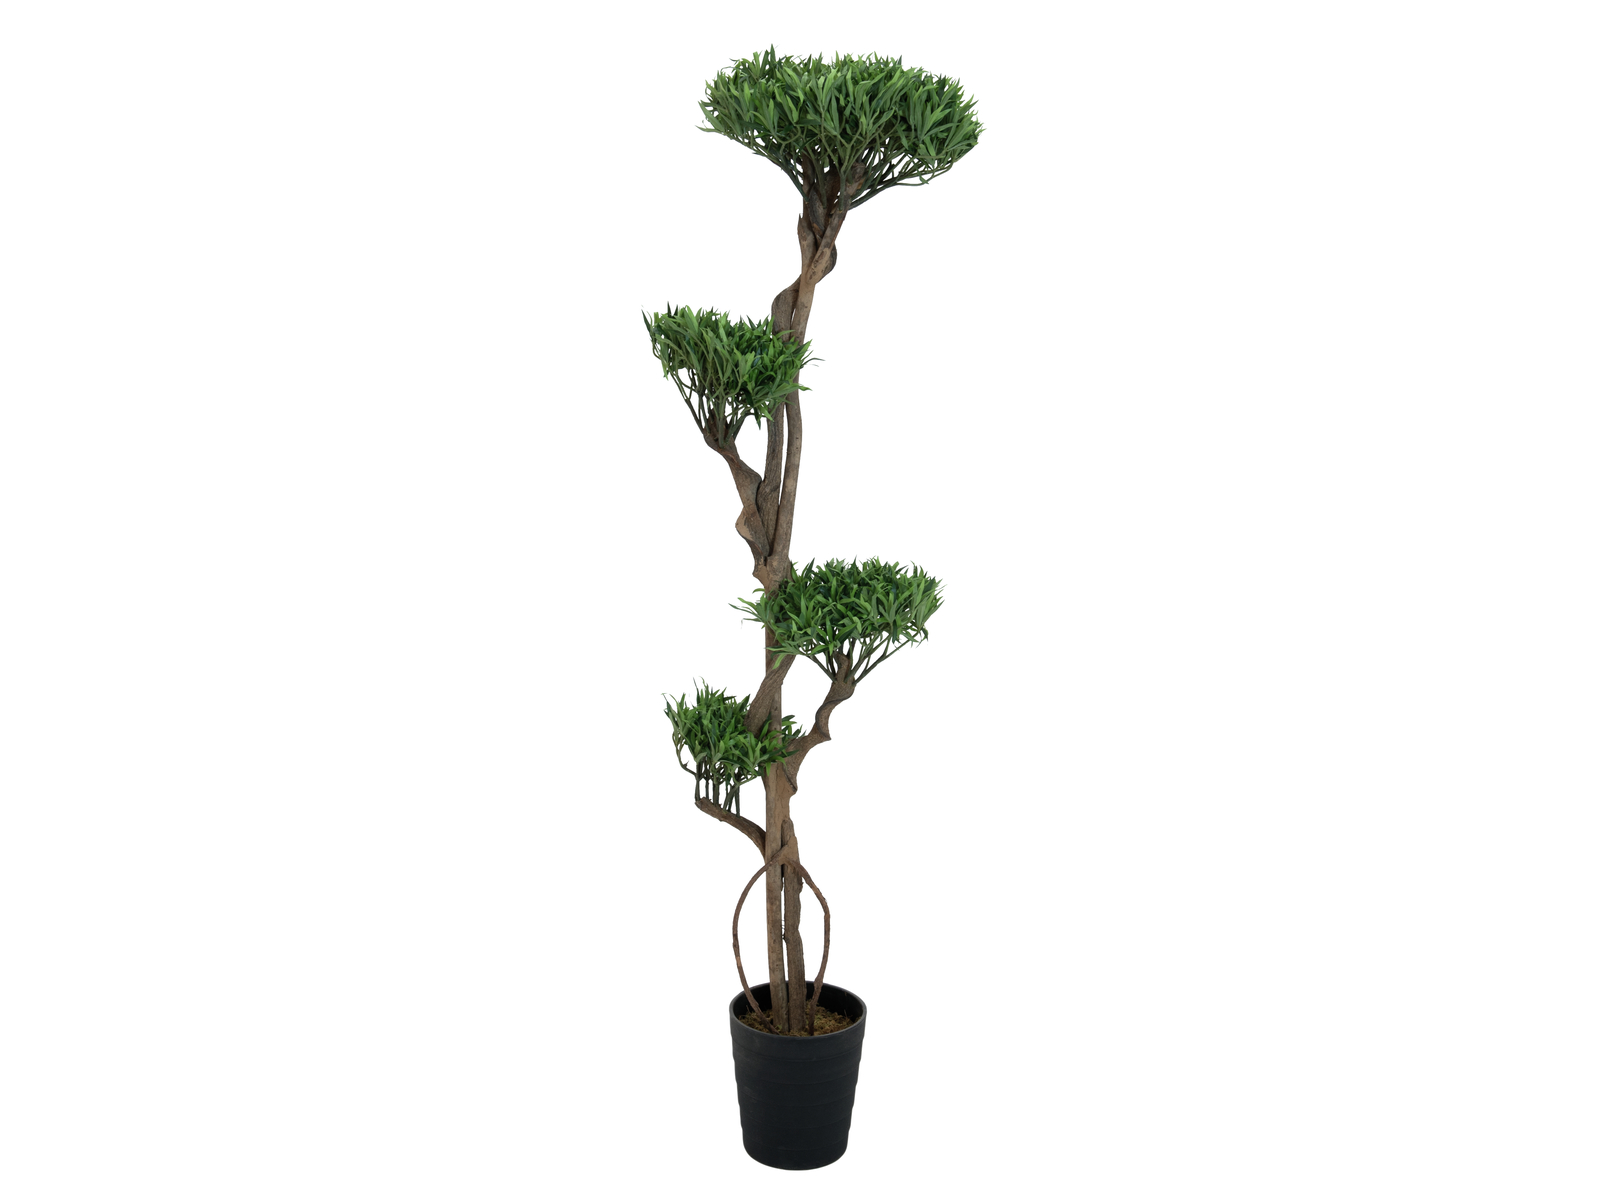 EUROPALMS albero Bonsai, multi tronco, 170cm